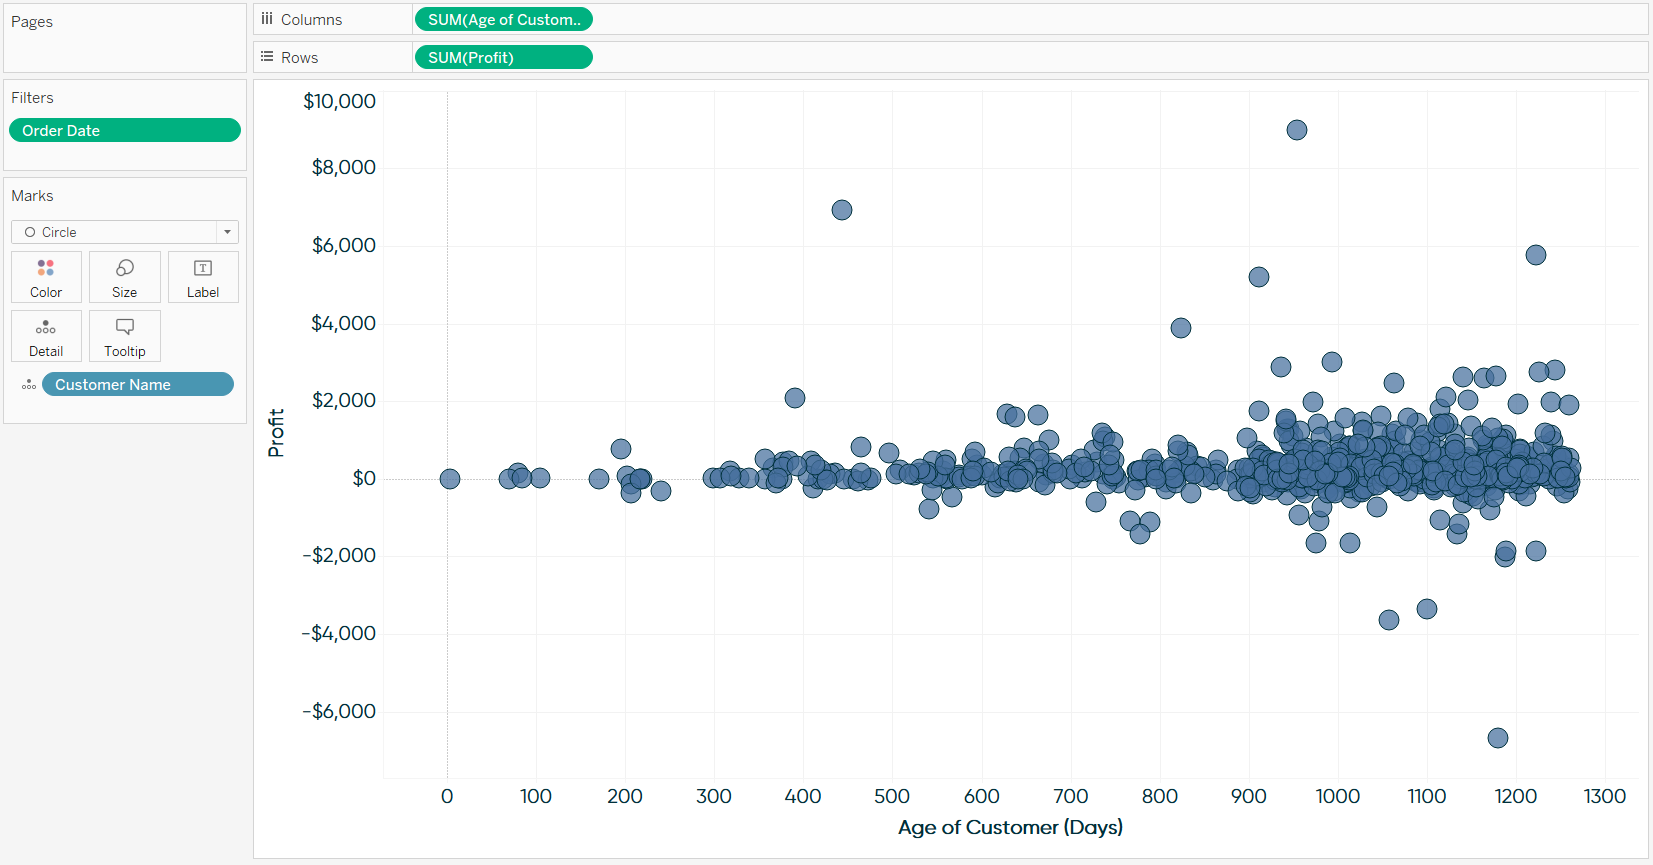 Profit and Age of Customer by Customer Name Scatter Plot in Tableau